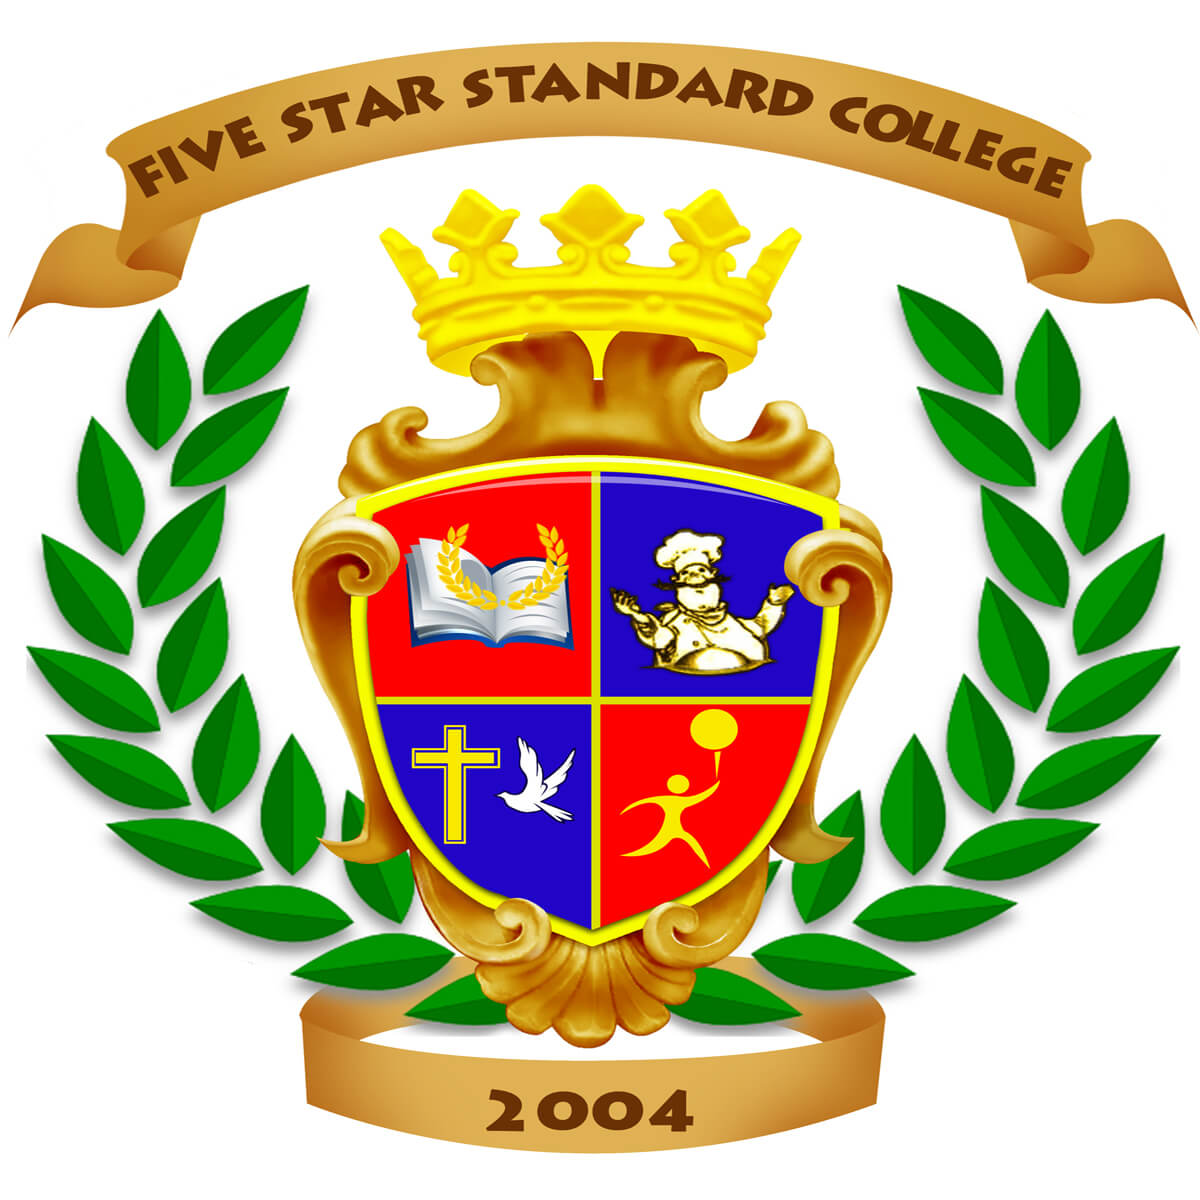 Five Star Standard College Logo